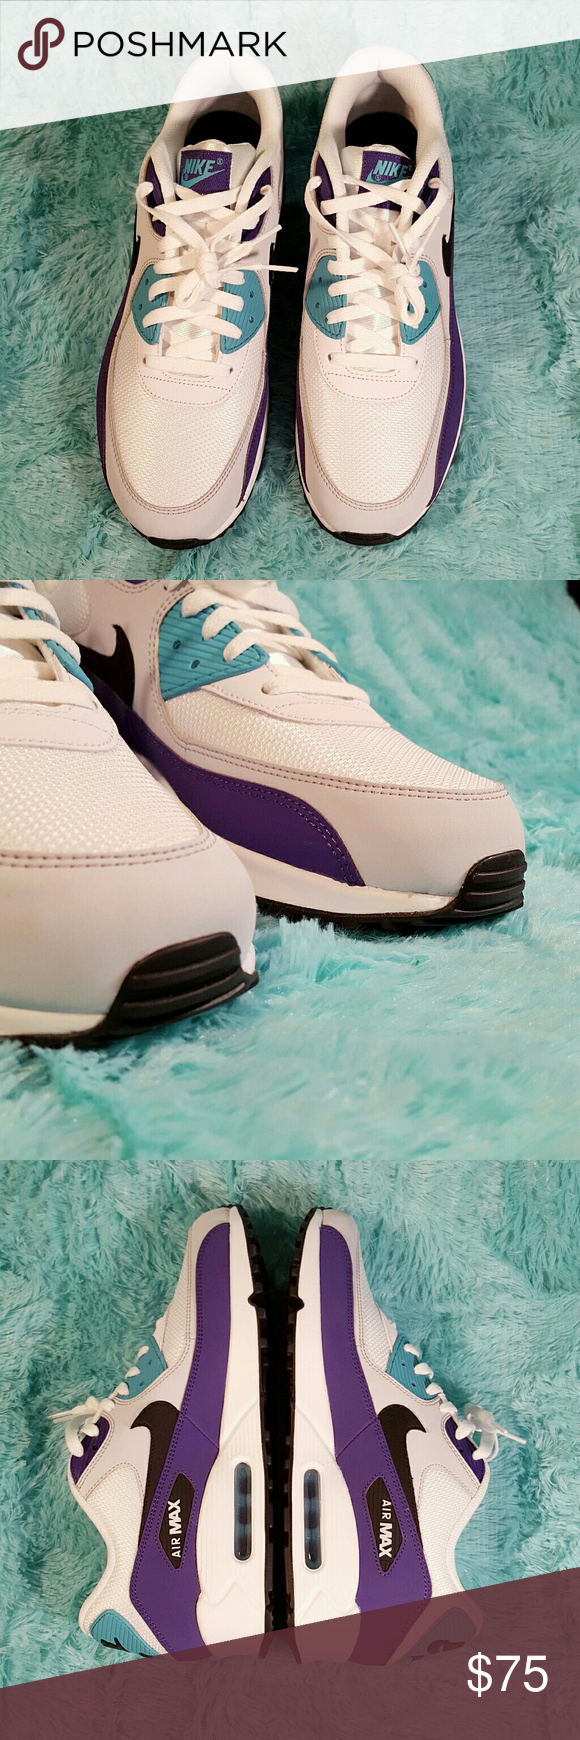 Sz 12 Nike Air Max 90 Essential Grape New without box Black